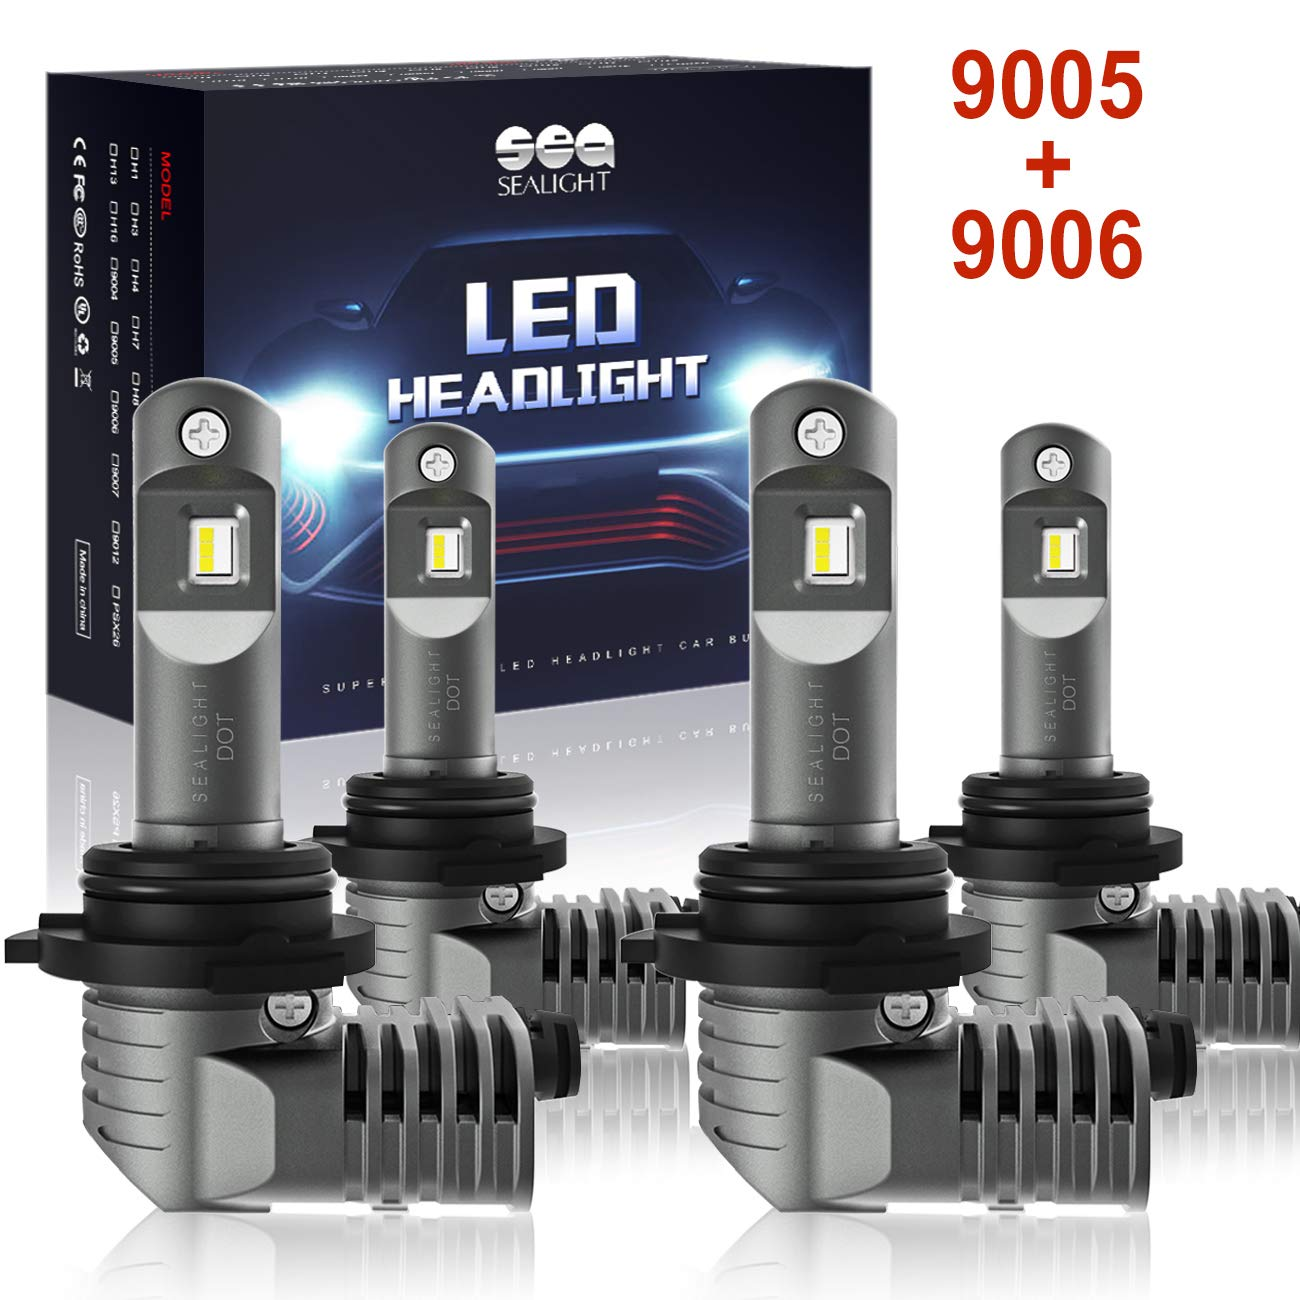 9005/HB3 9006/HB4 LED Headlight Bulbs with Fan, SEALIGHT S2 Series Mini Design Upgraded CSP Chips 6000K Xenon white IP67-2 Year Warranty (4 Pack)